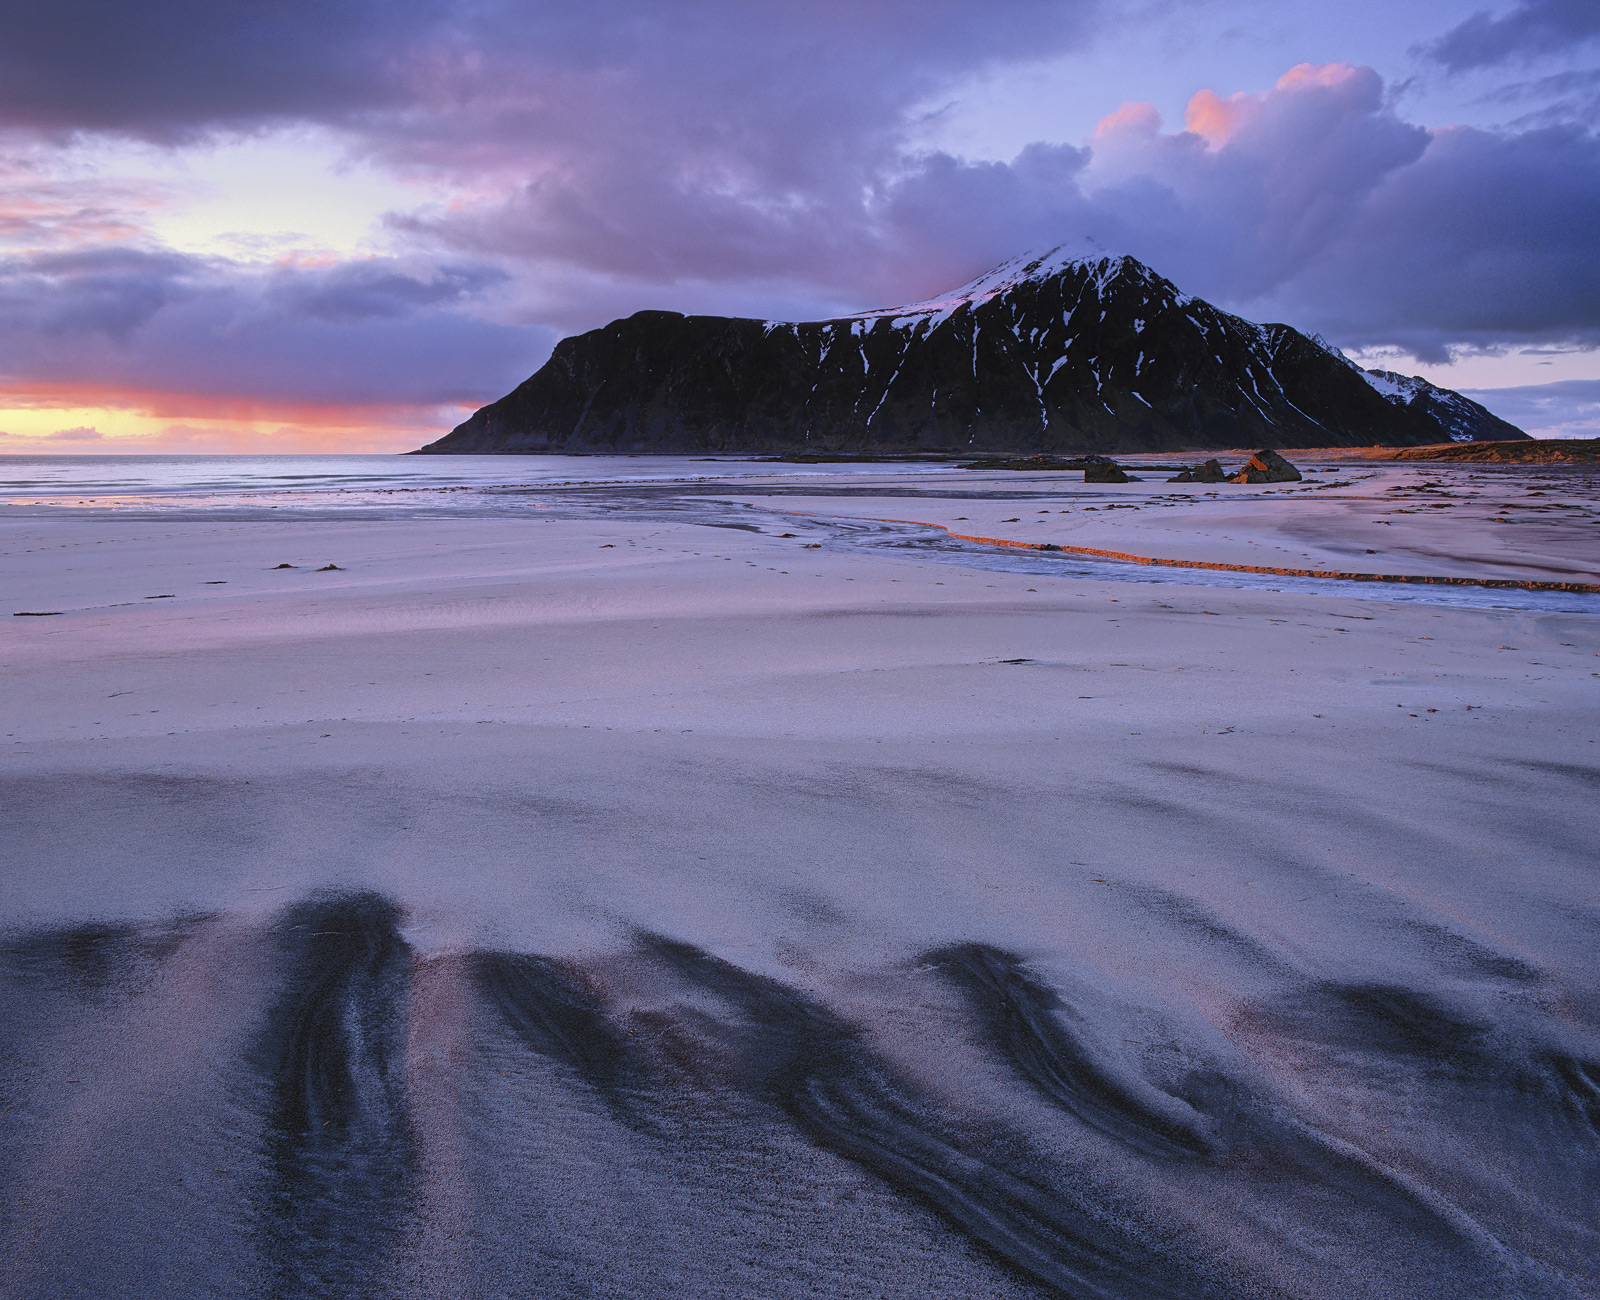 On a freezing cold late Spring night just shy of midnight, Lofoten being situated just inside the Arctic circle, the sun finally...